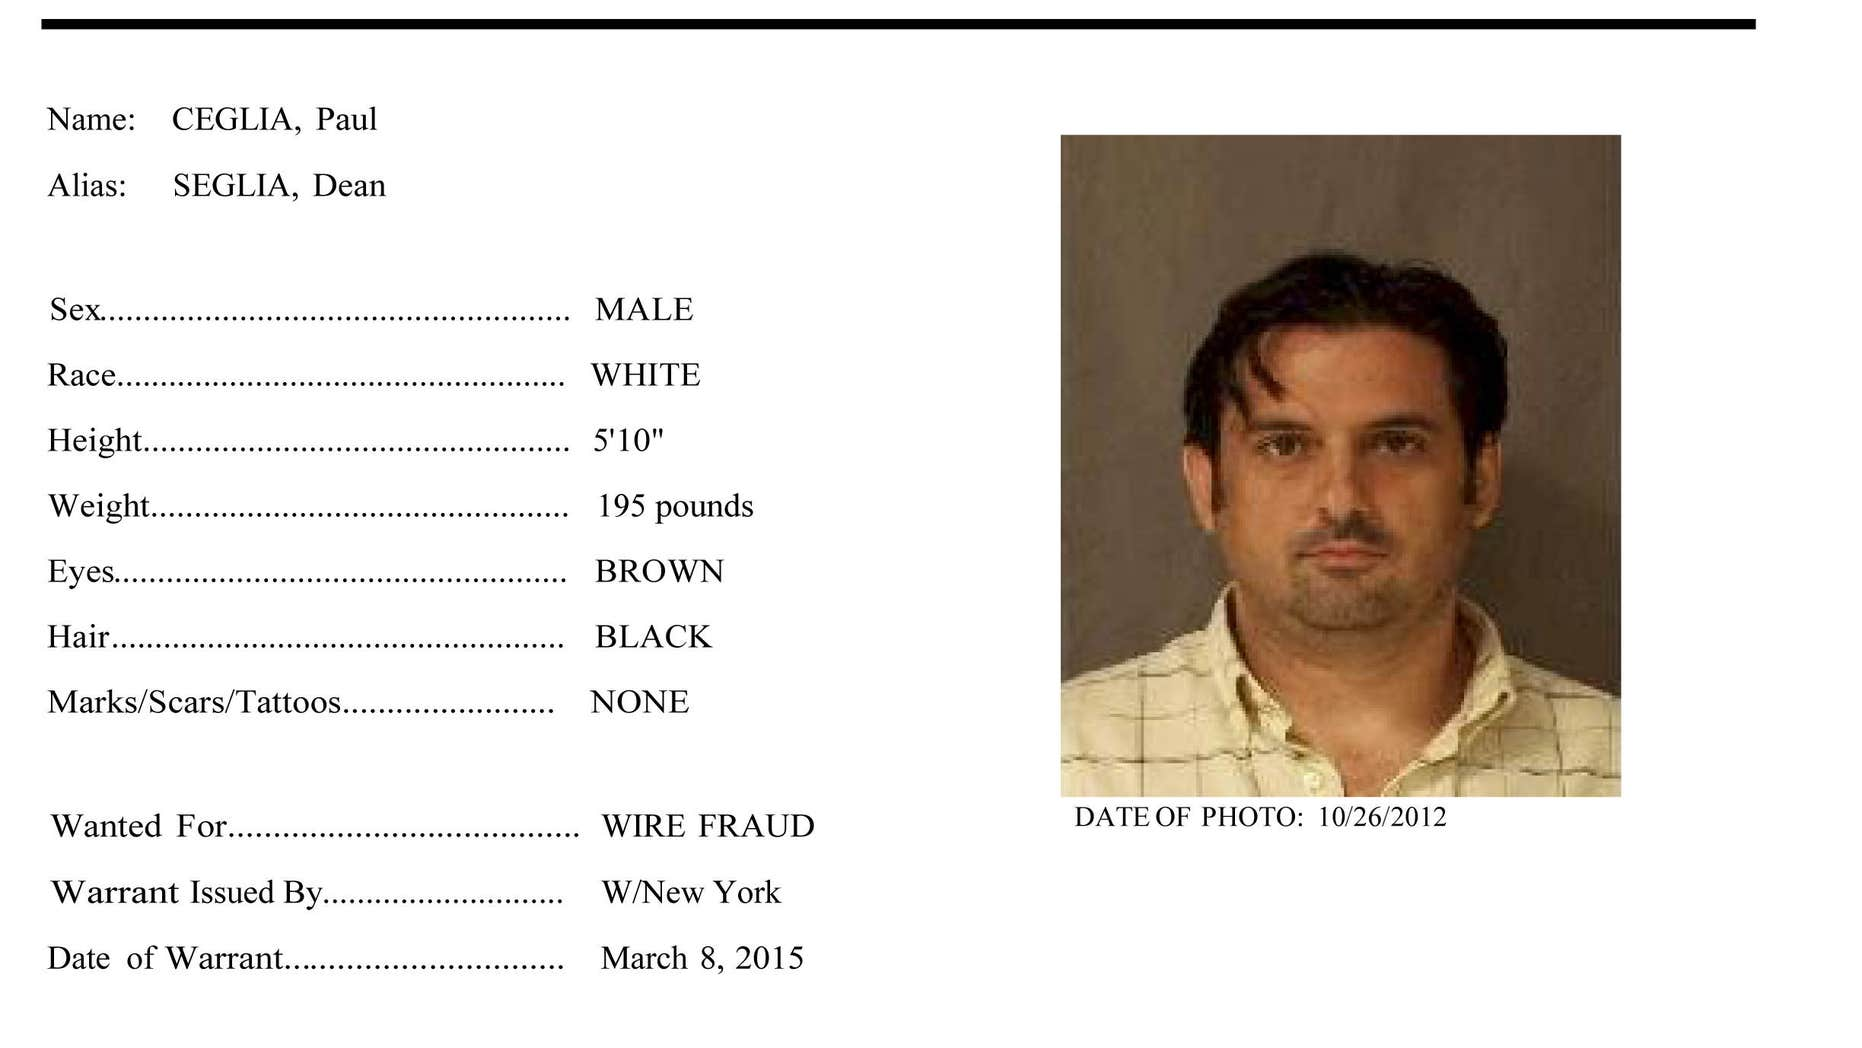 This Wanted poster provided by the U.S. Marshals Service shows Paul Ceglia.